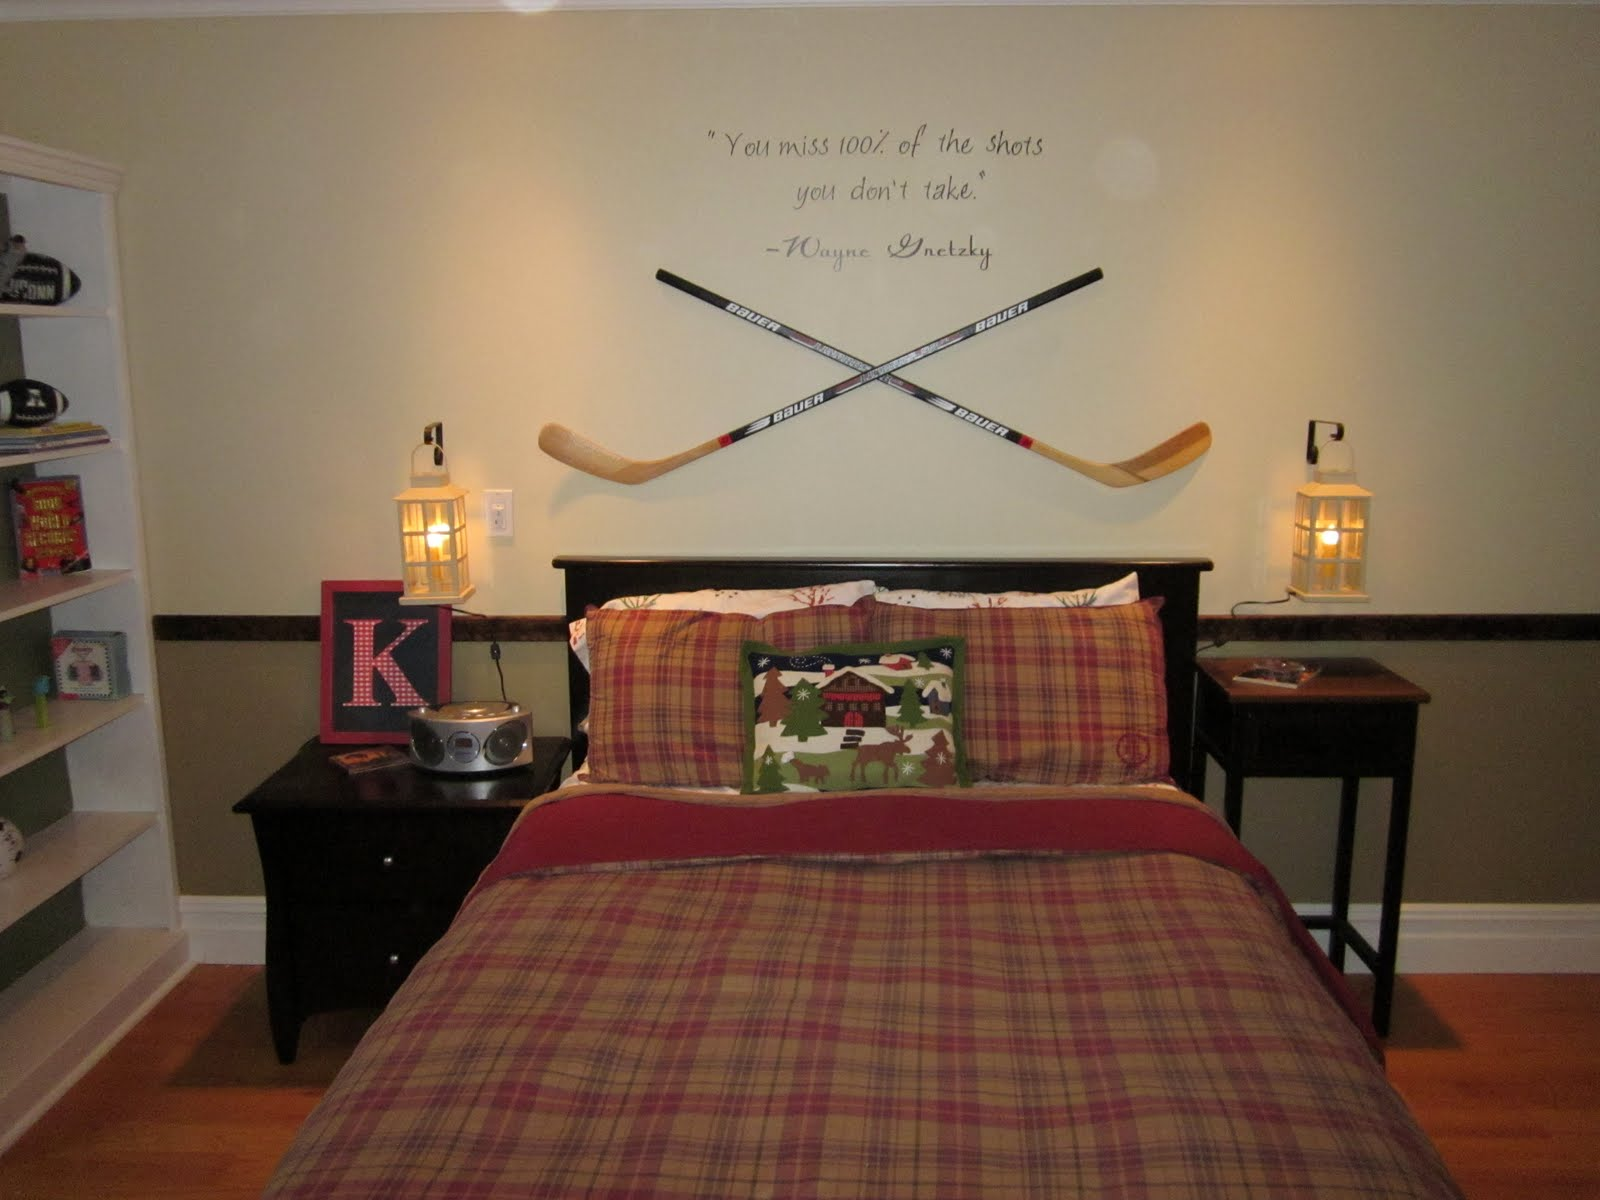 1000 images about hockey bedroom ideas on pinterest hockey room ideas design dazzle